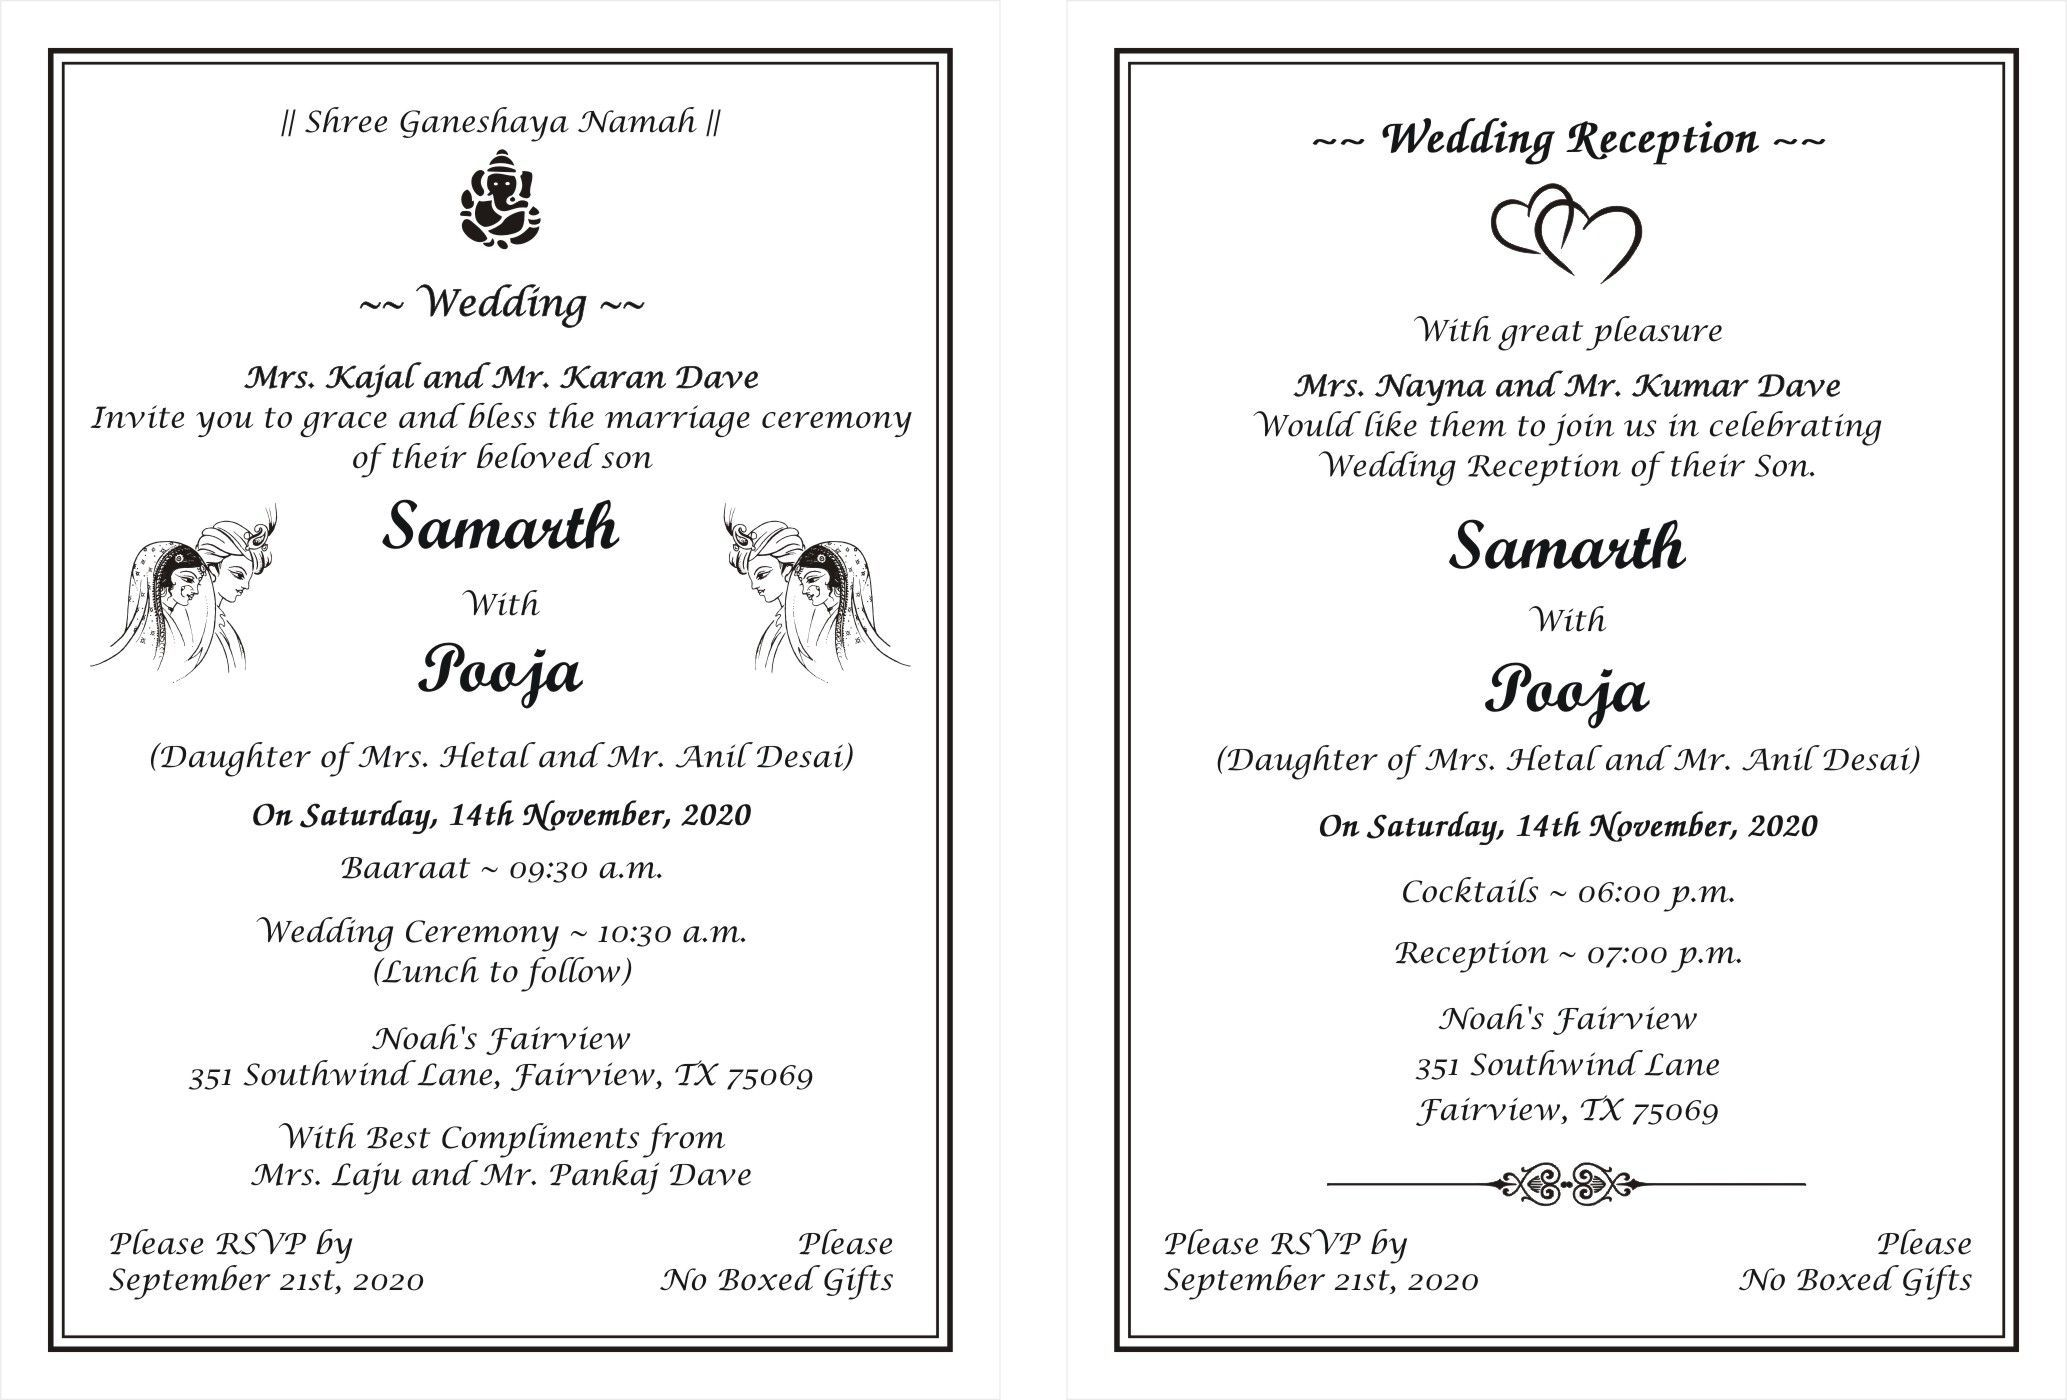 Marriage Invitation Card Format In English Pdf In 2021 Wedding Invitation Card Wording Marriage Invitation Card Format Wedding Card Format